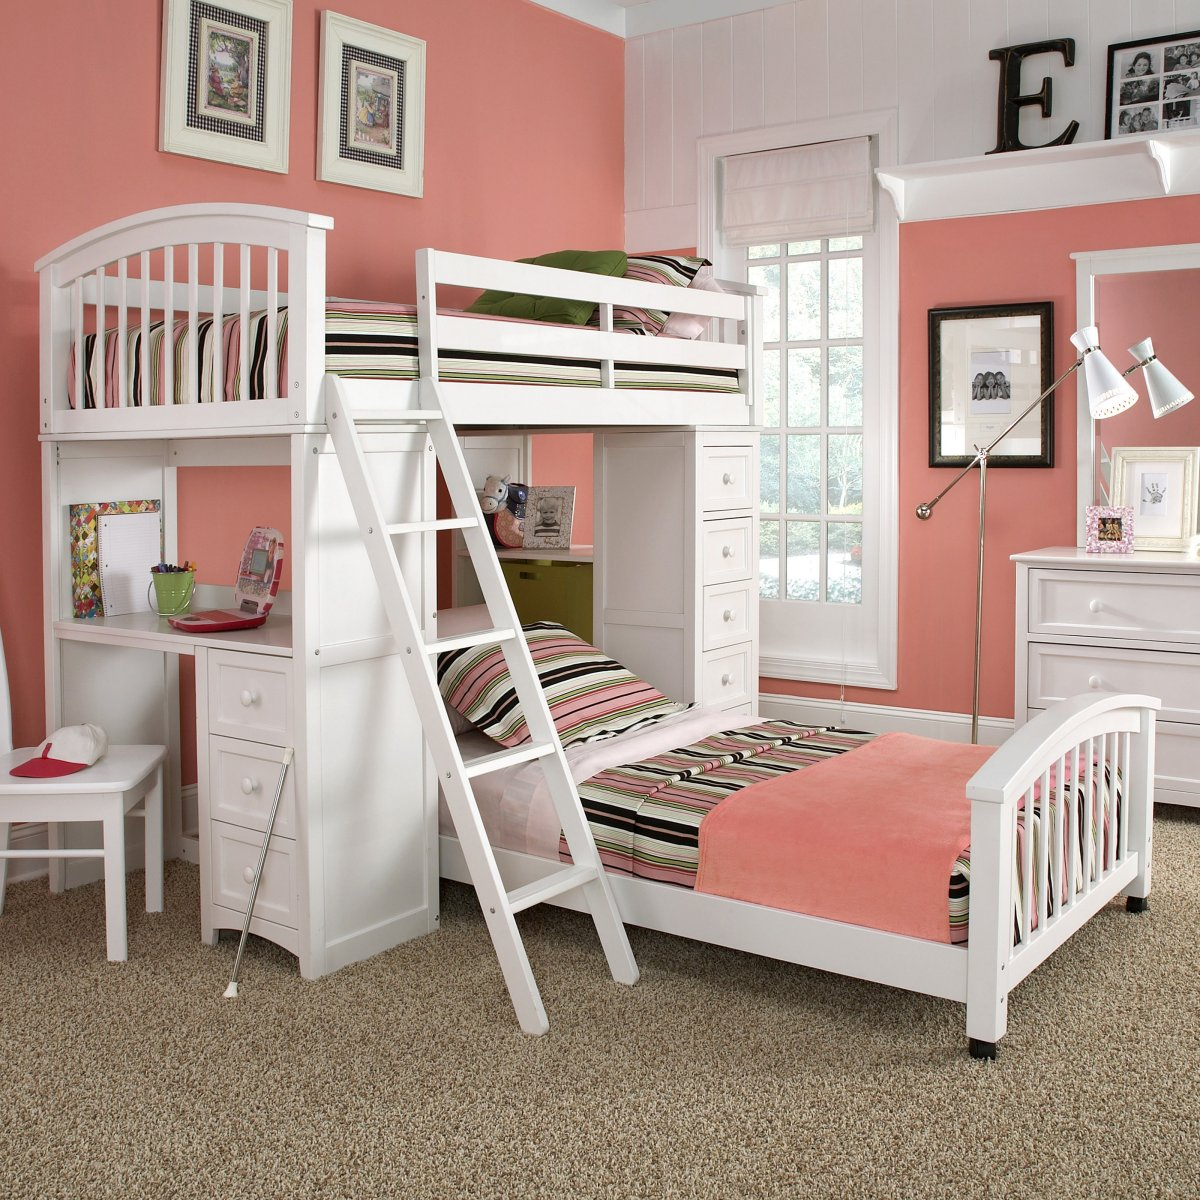 Simple L Shaped Bunk Beds For Small Bedroom Space: Cute L Shape Bunk Beds Pink Wall White Dressing Table